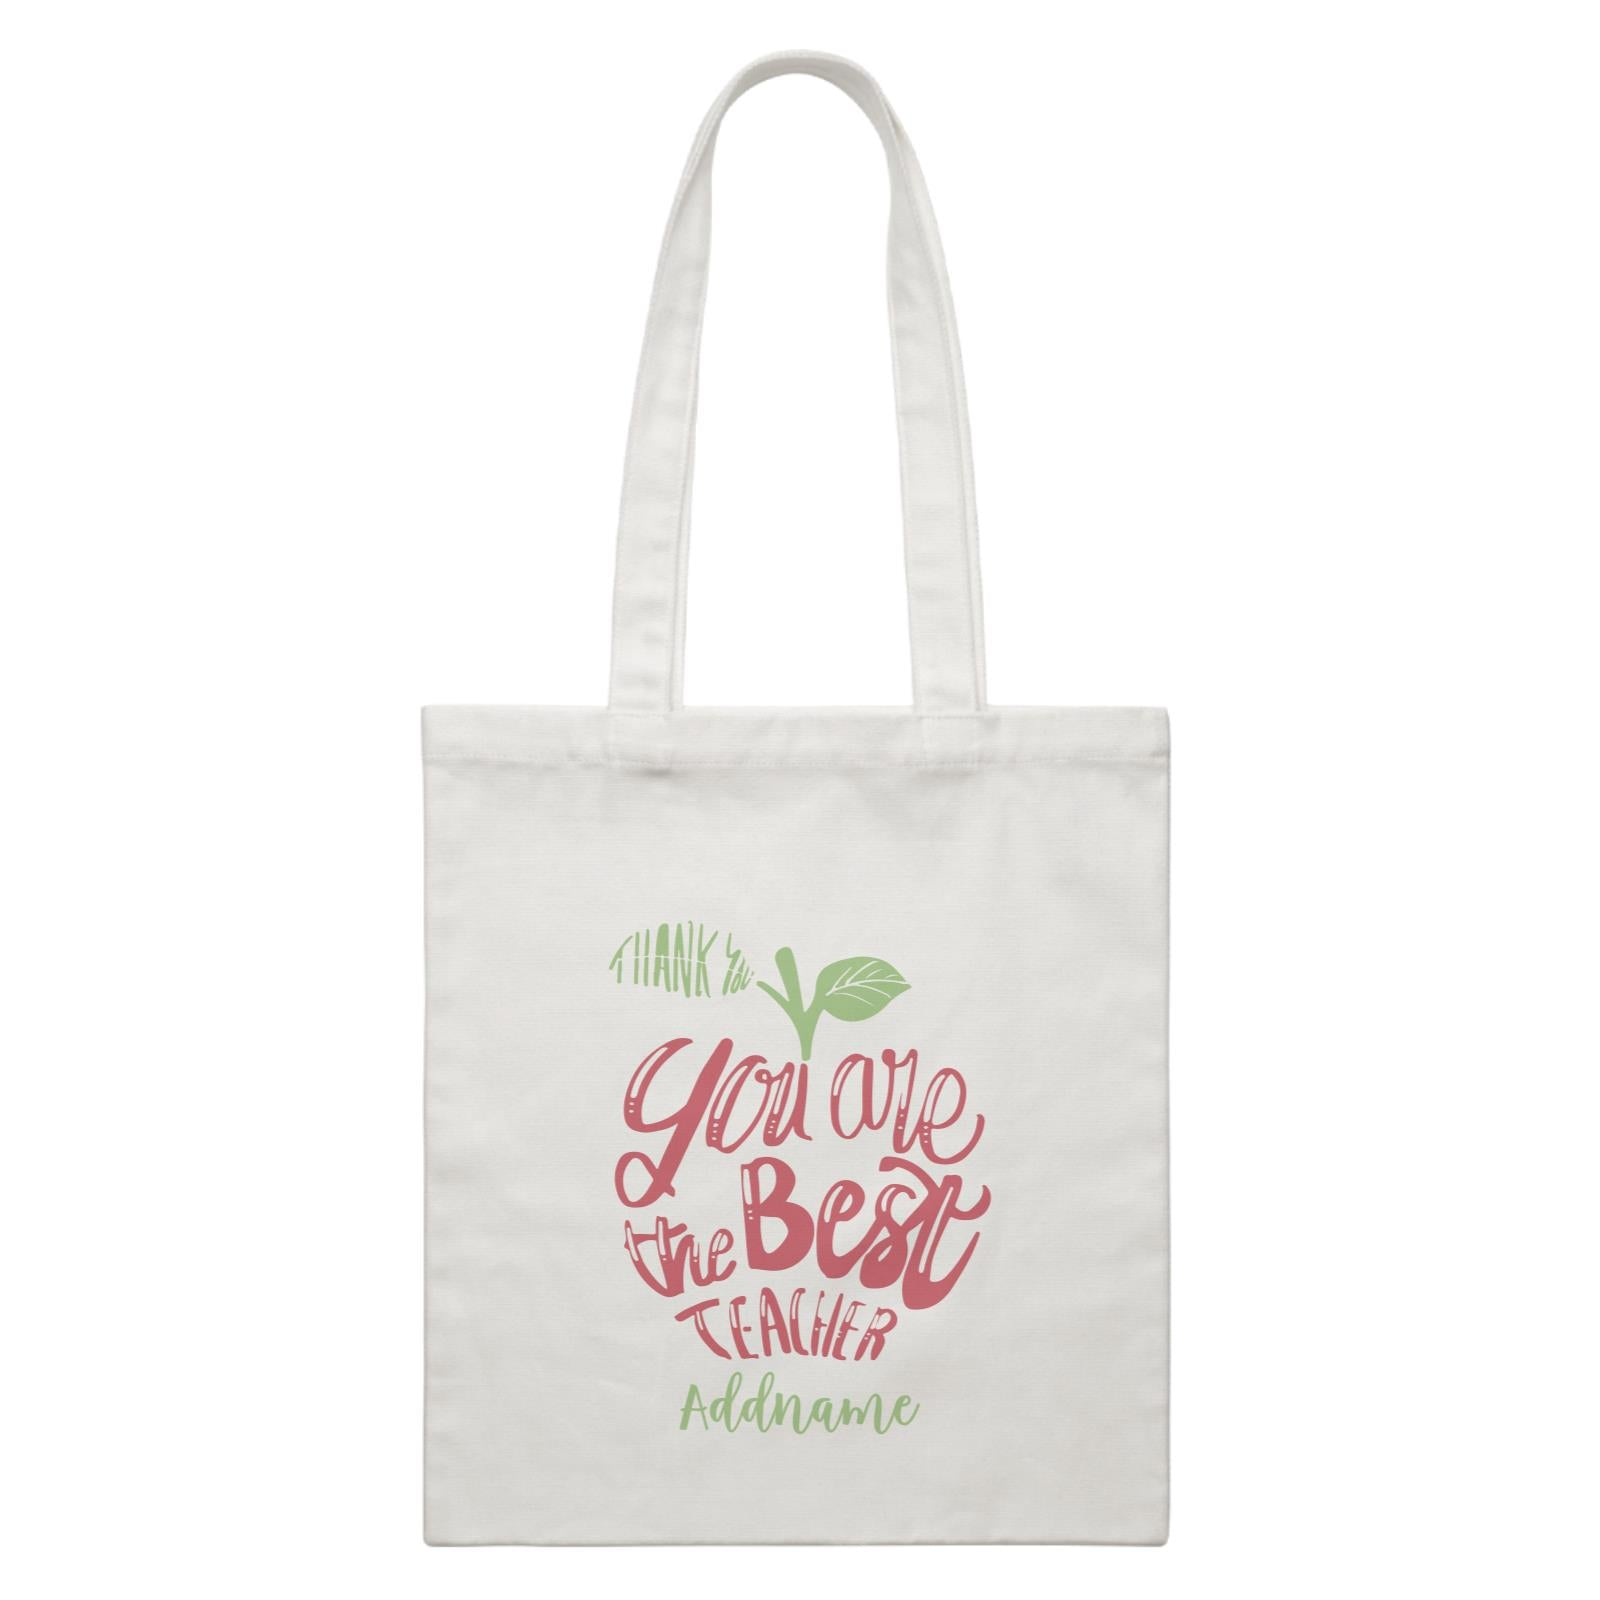 Teacher Apple Thank You You Are The Best Teacher Addname White Canvas Bag